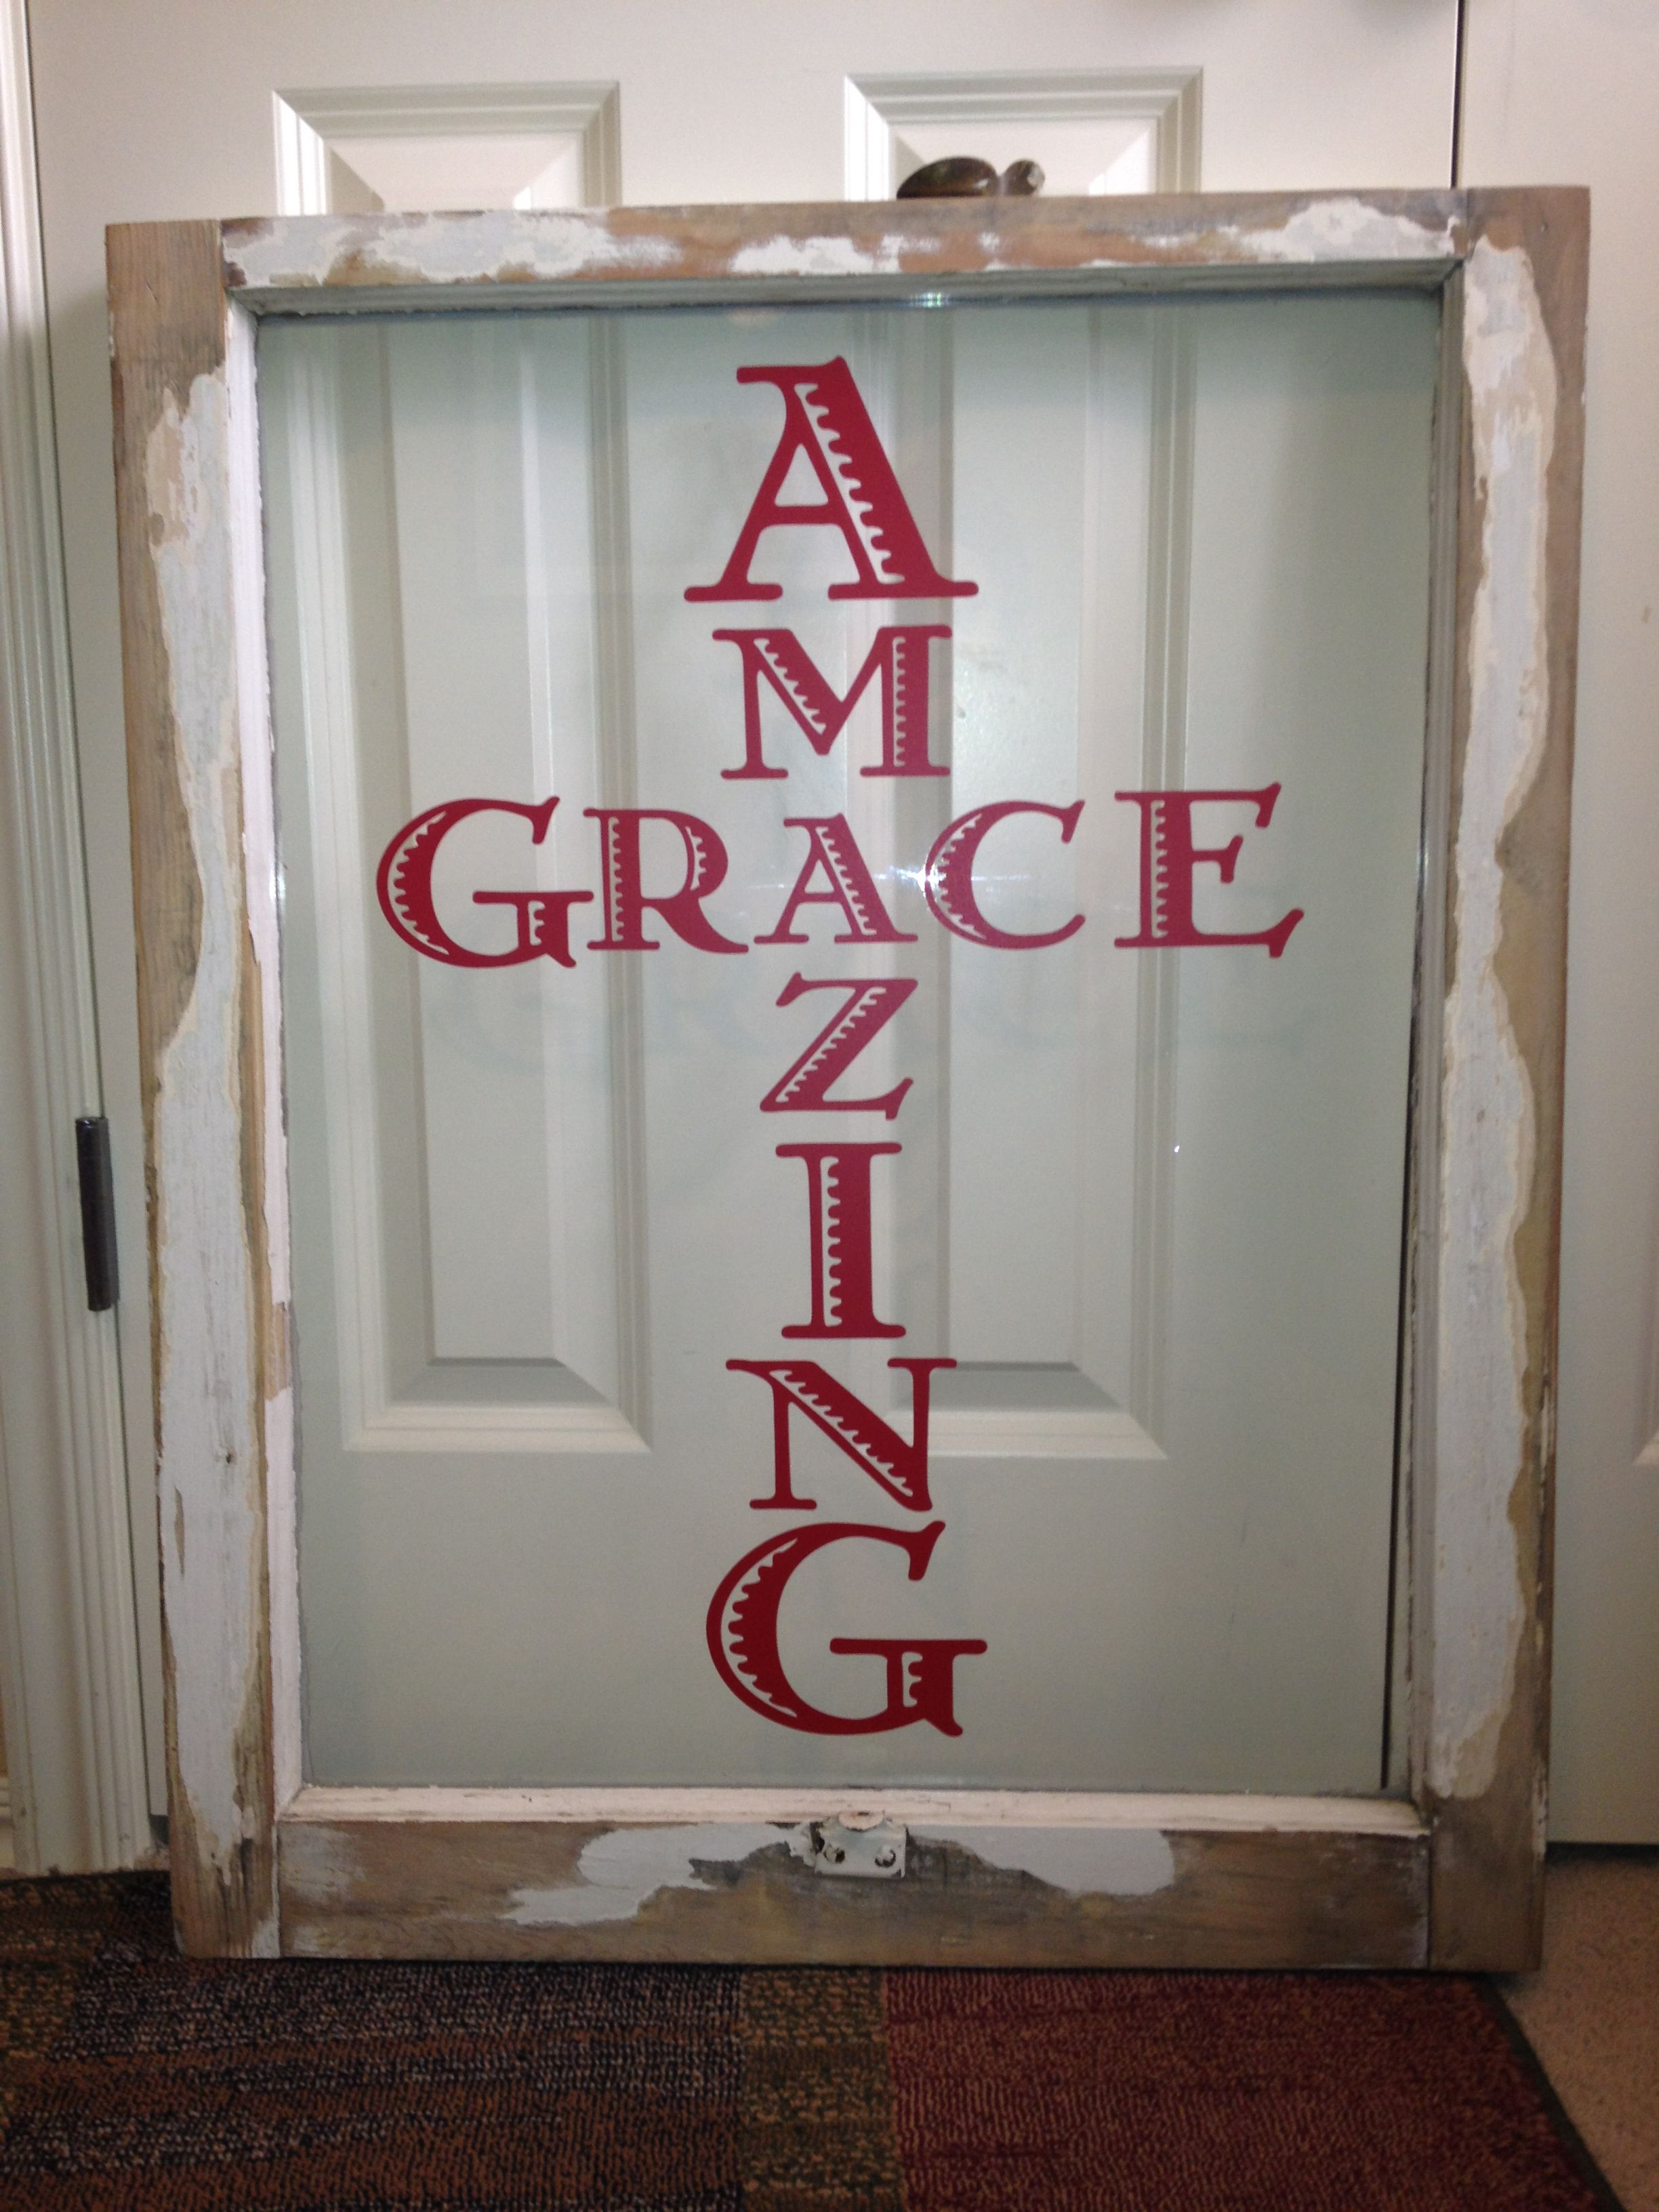 Amazing Grace Windows Decorated With Uppercase Living